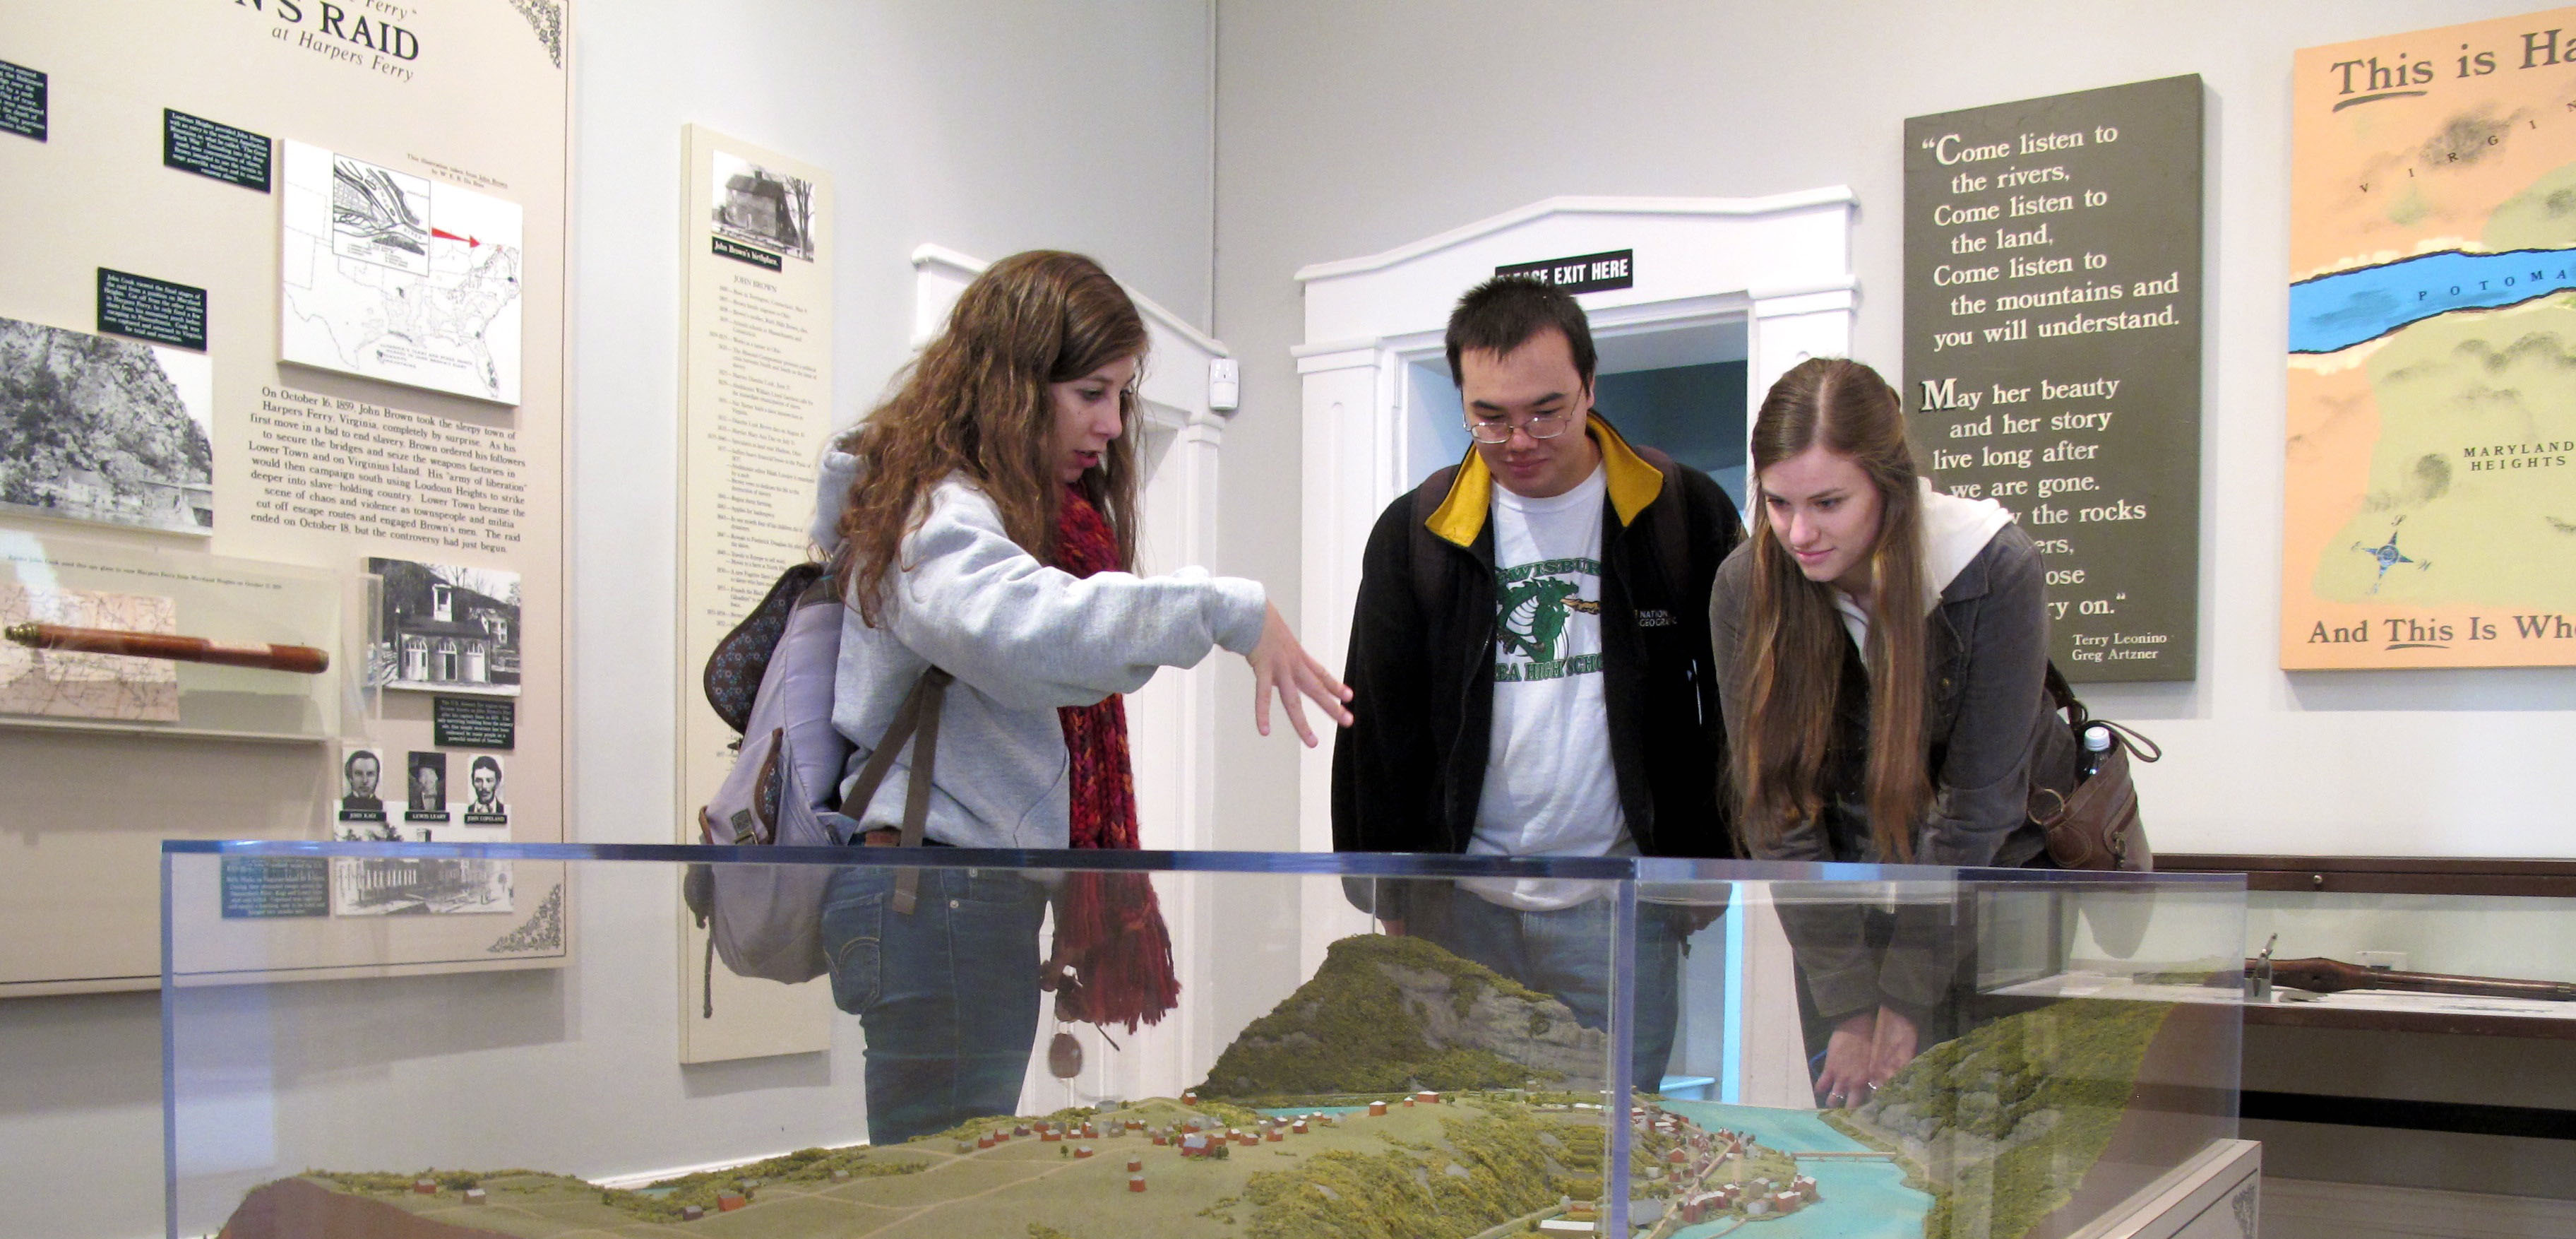 Students viewing scale model of rural town